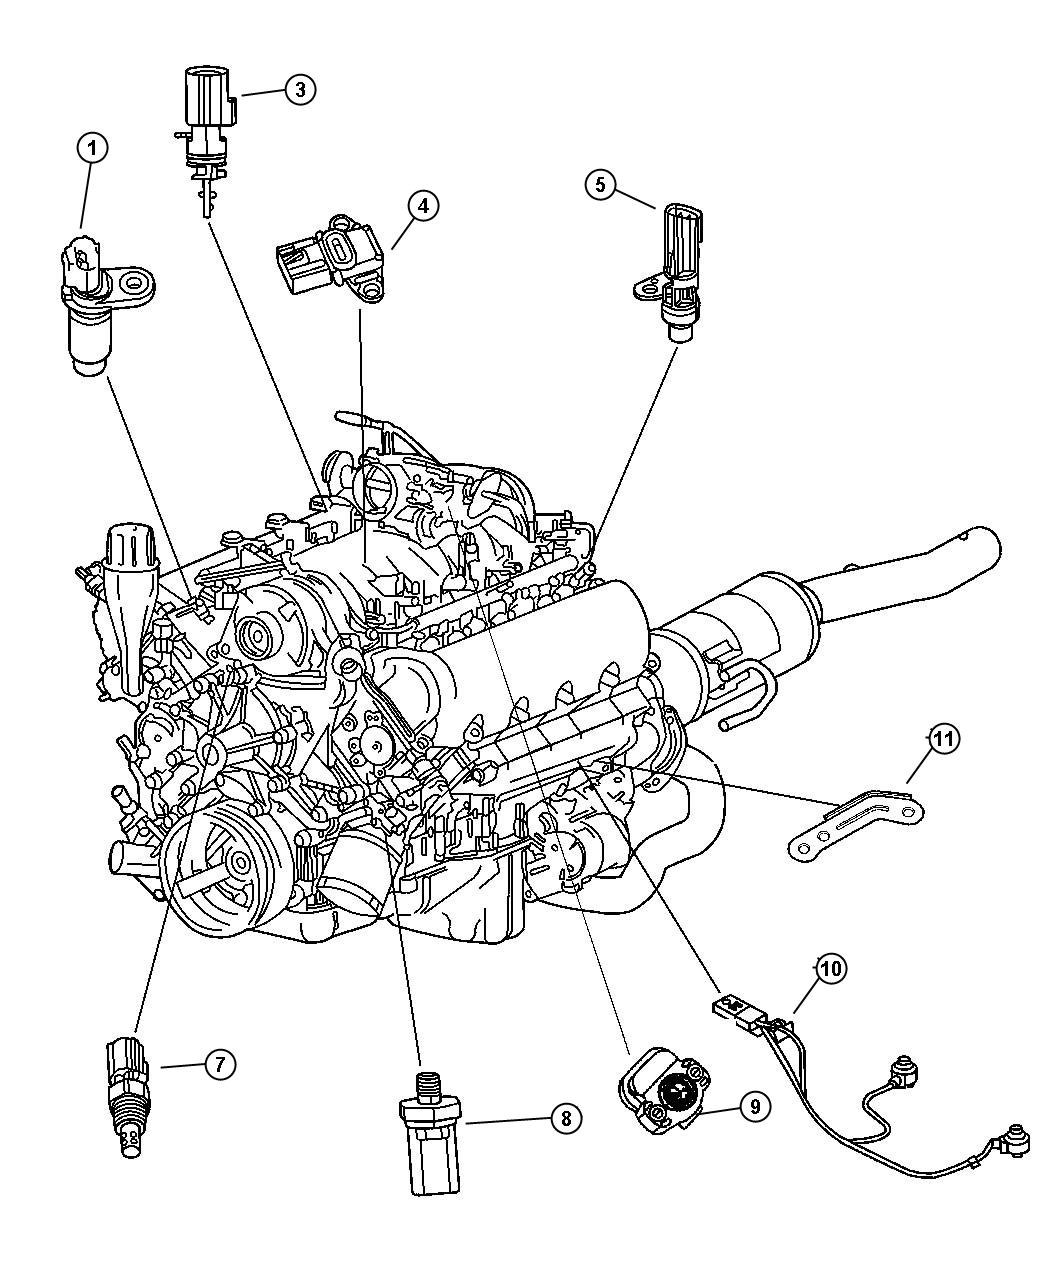 05 Civic Wiring Diagram